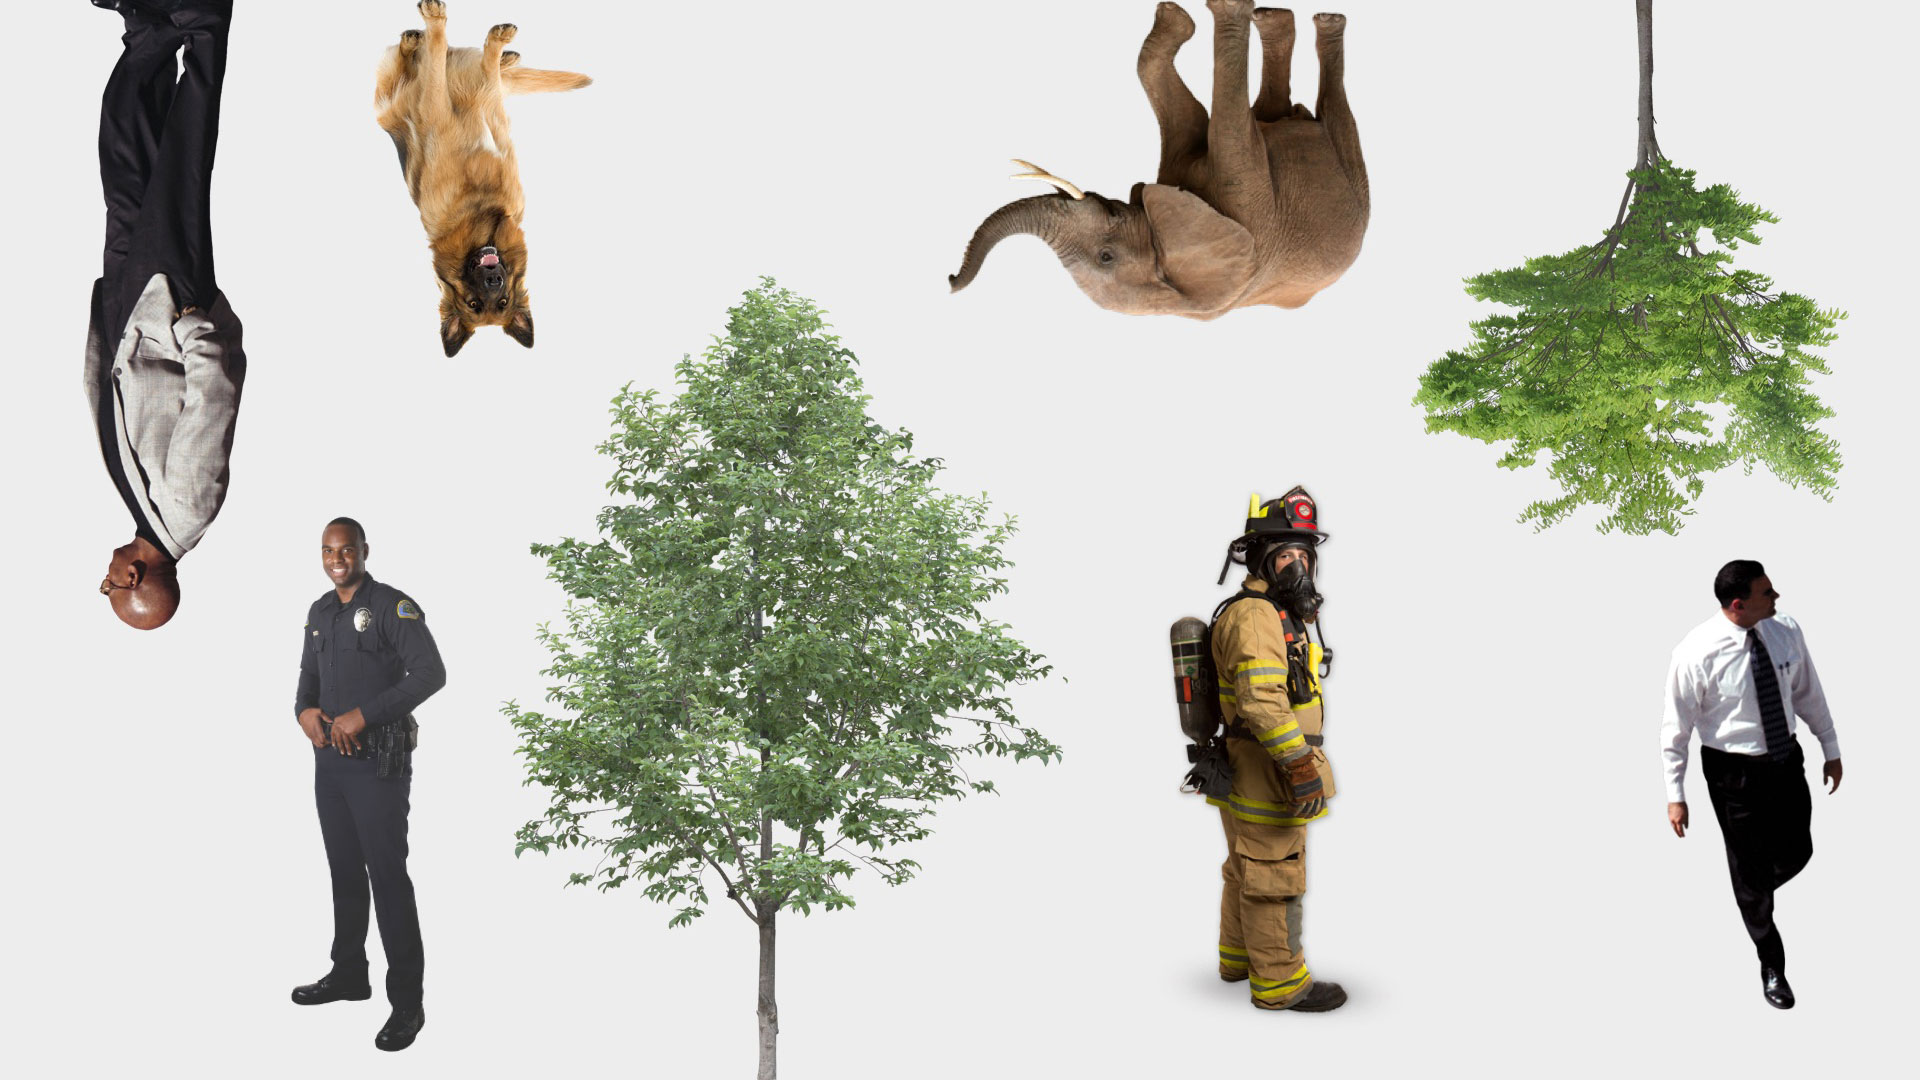 1000 Free Cutouts - People, Cars, Trees, Animals, and More